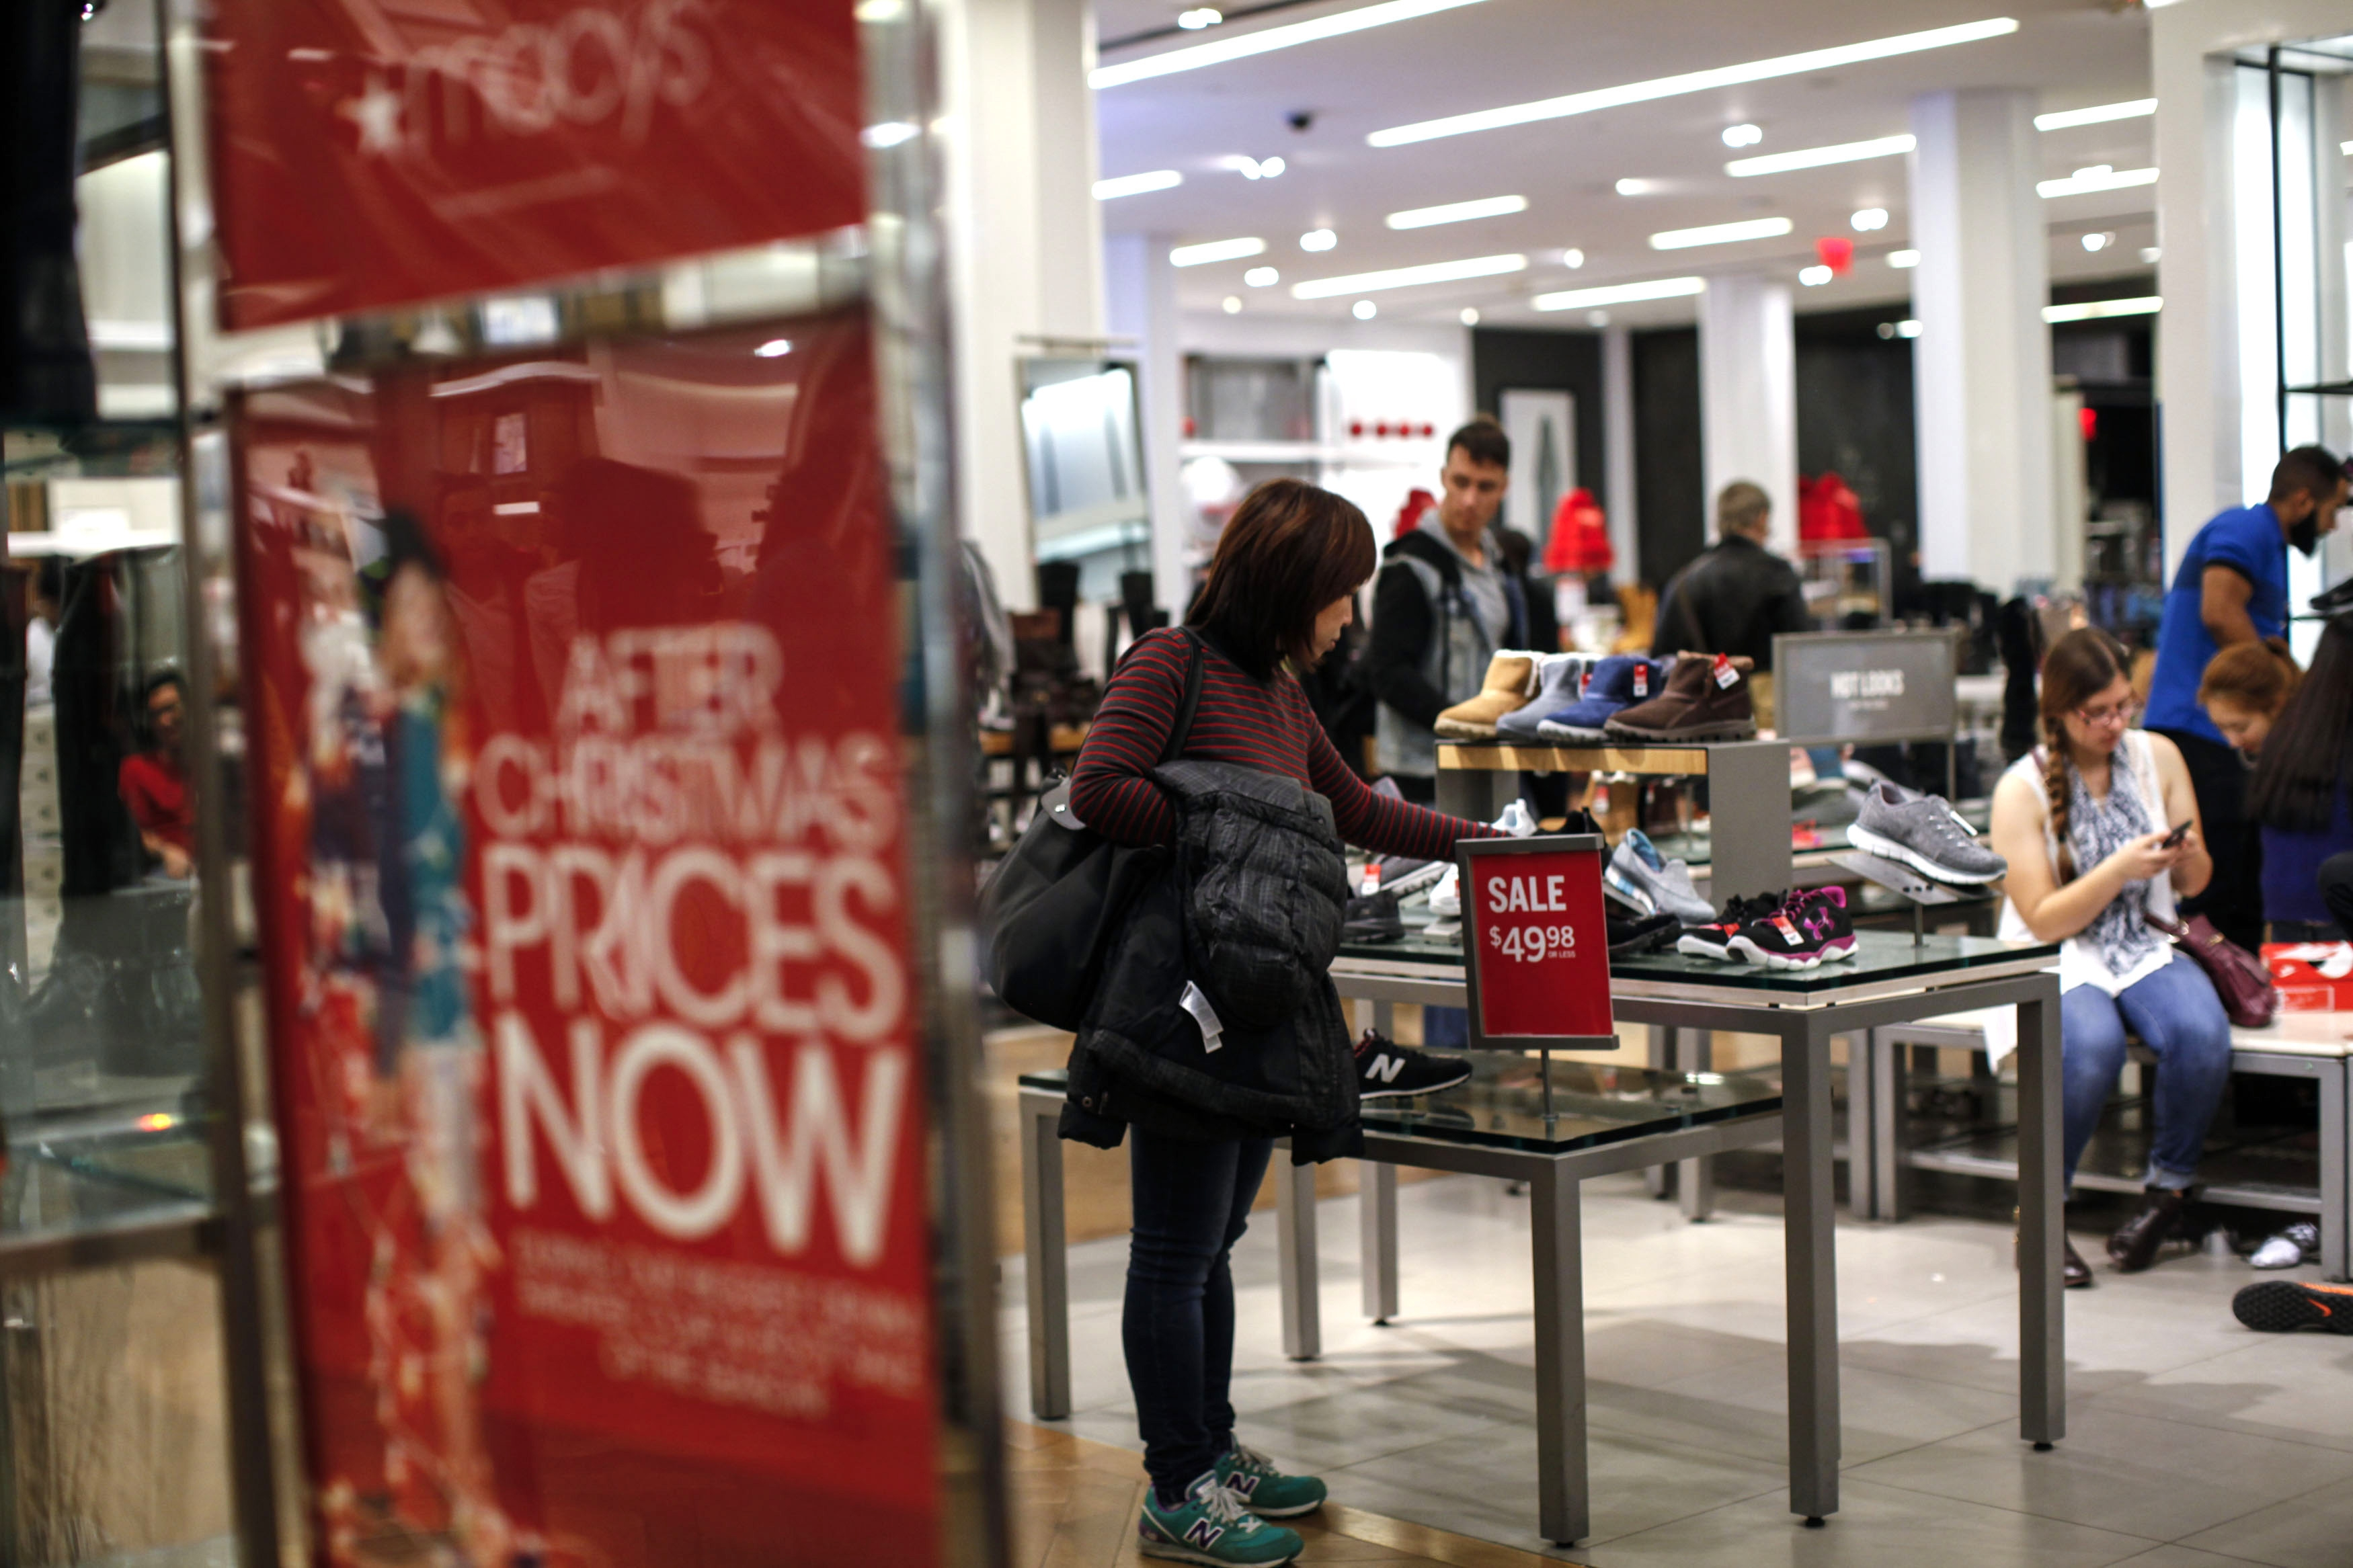 Retail giant Macy's is closing numerous stores nationwide, including two Western New York locations. (Getty Images)